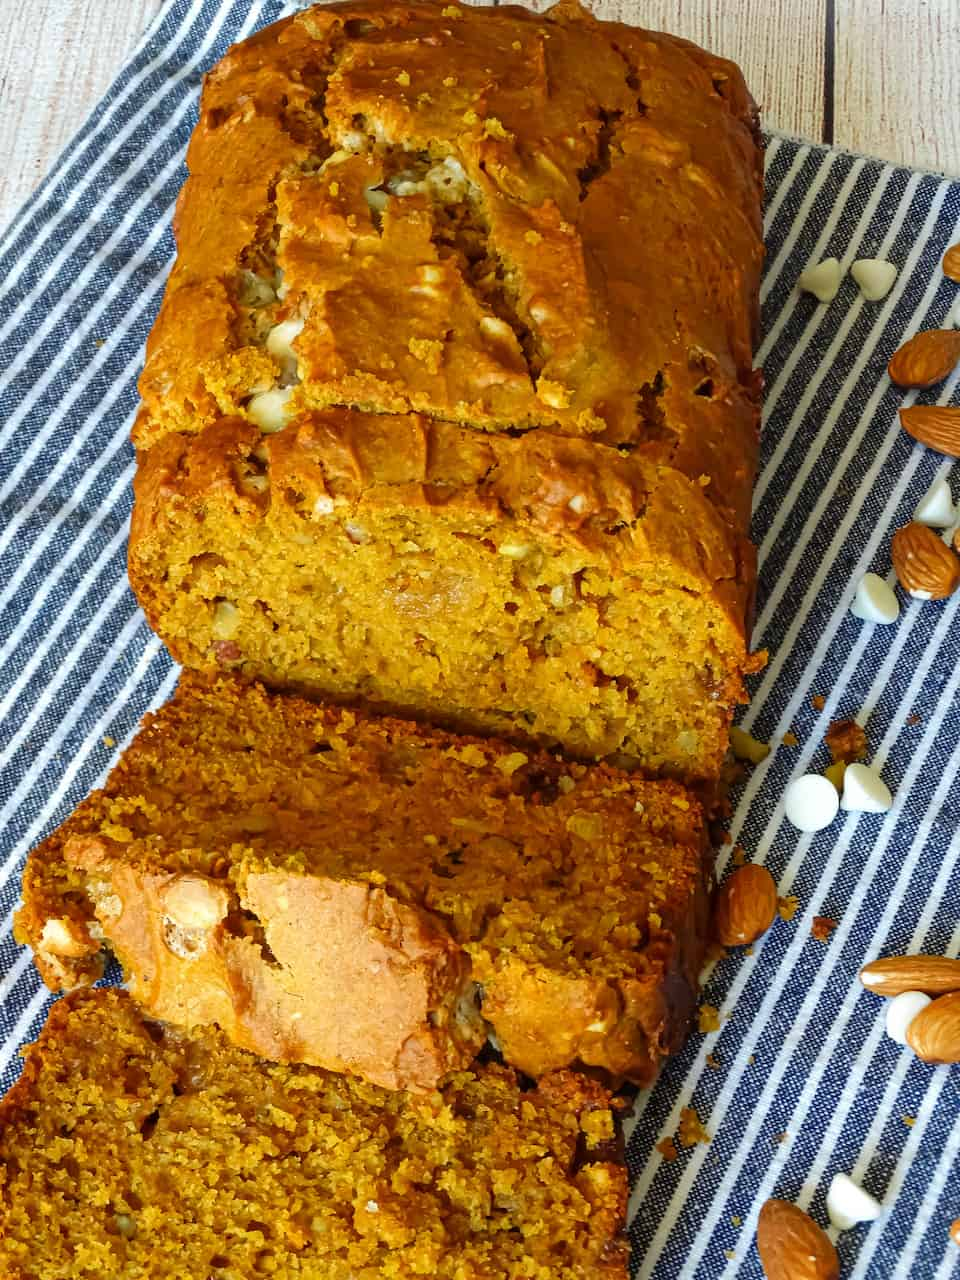 pumpkin bread with chocolate chips and almonds cut into slices